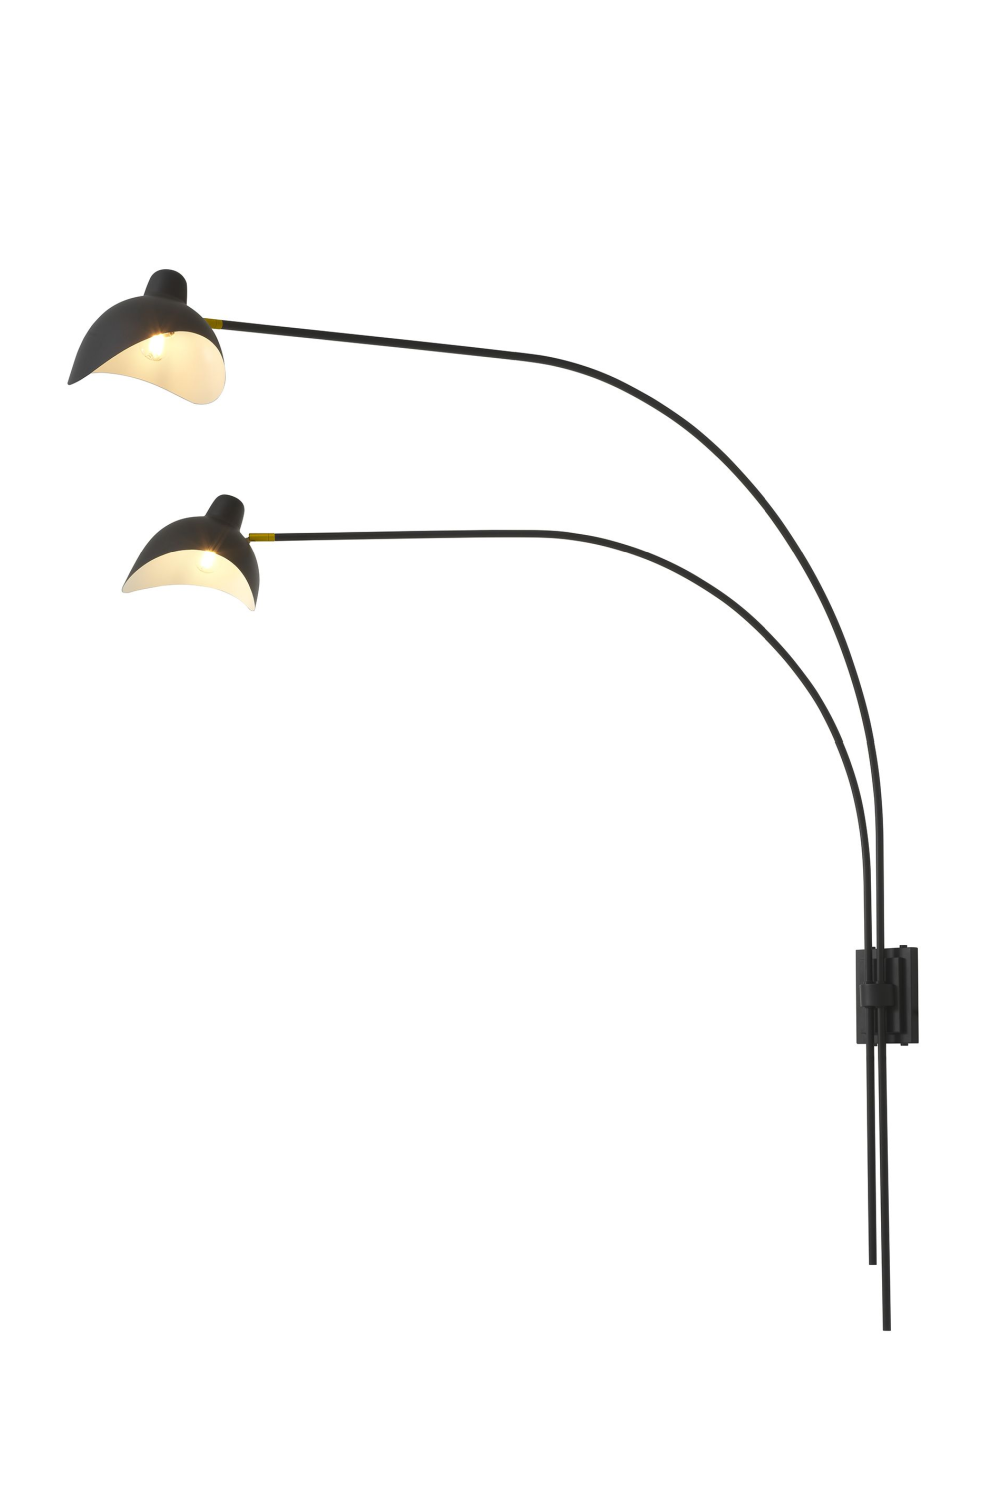 Black 2-Light Wall Lamp | Eichholtz Mitch | #1 Eichholtz Retailer